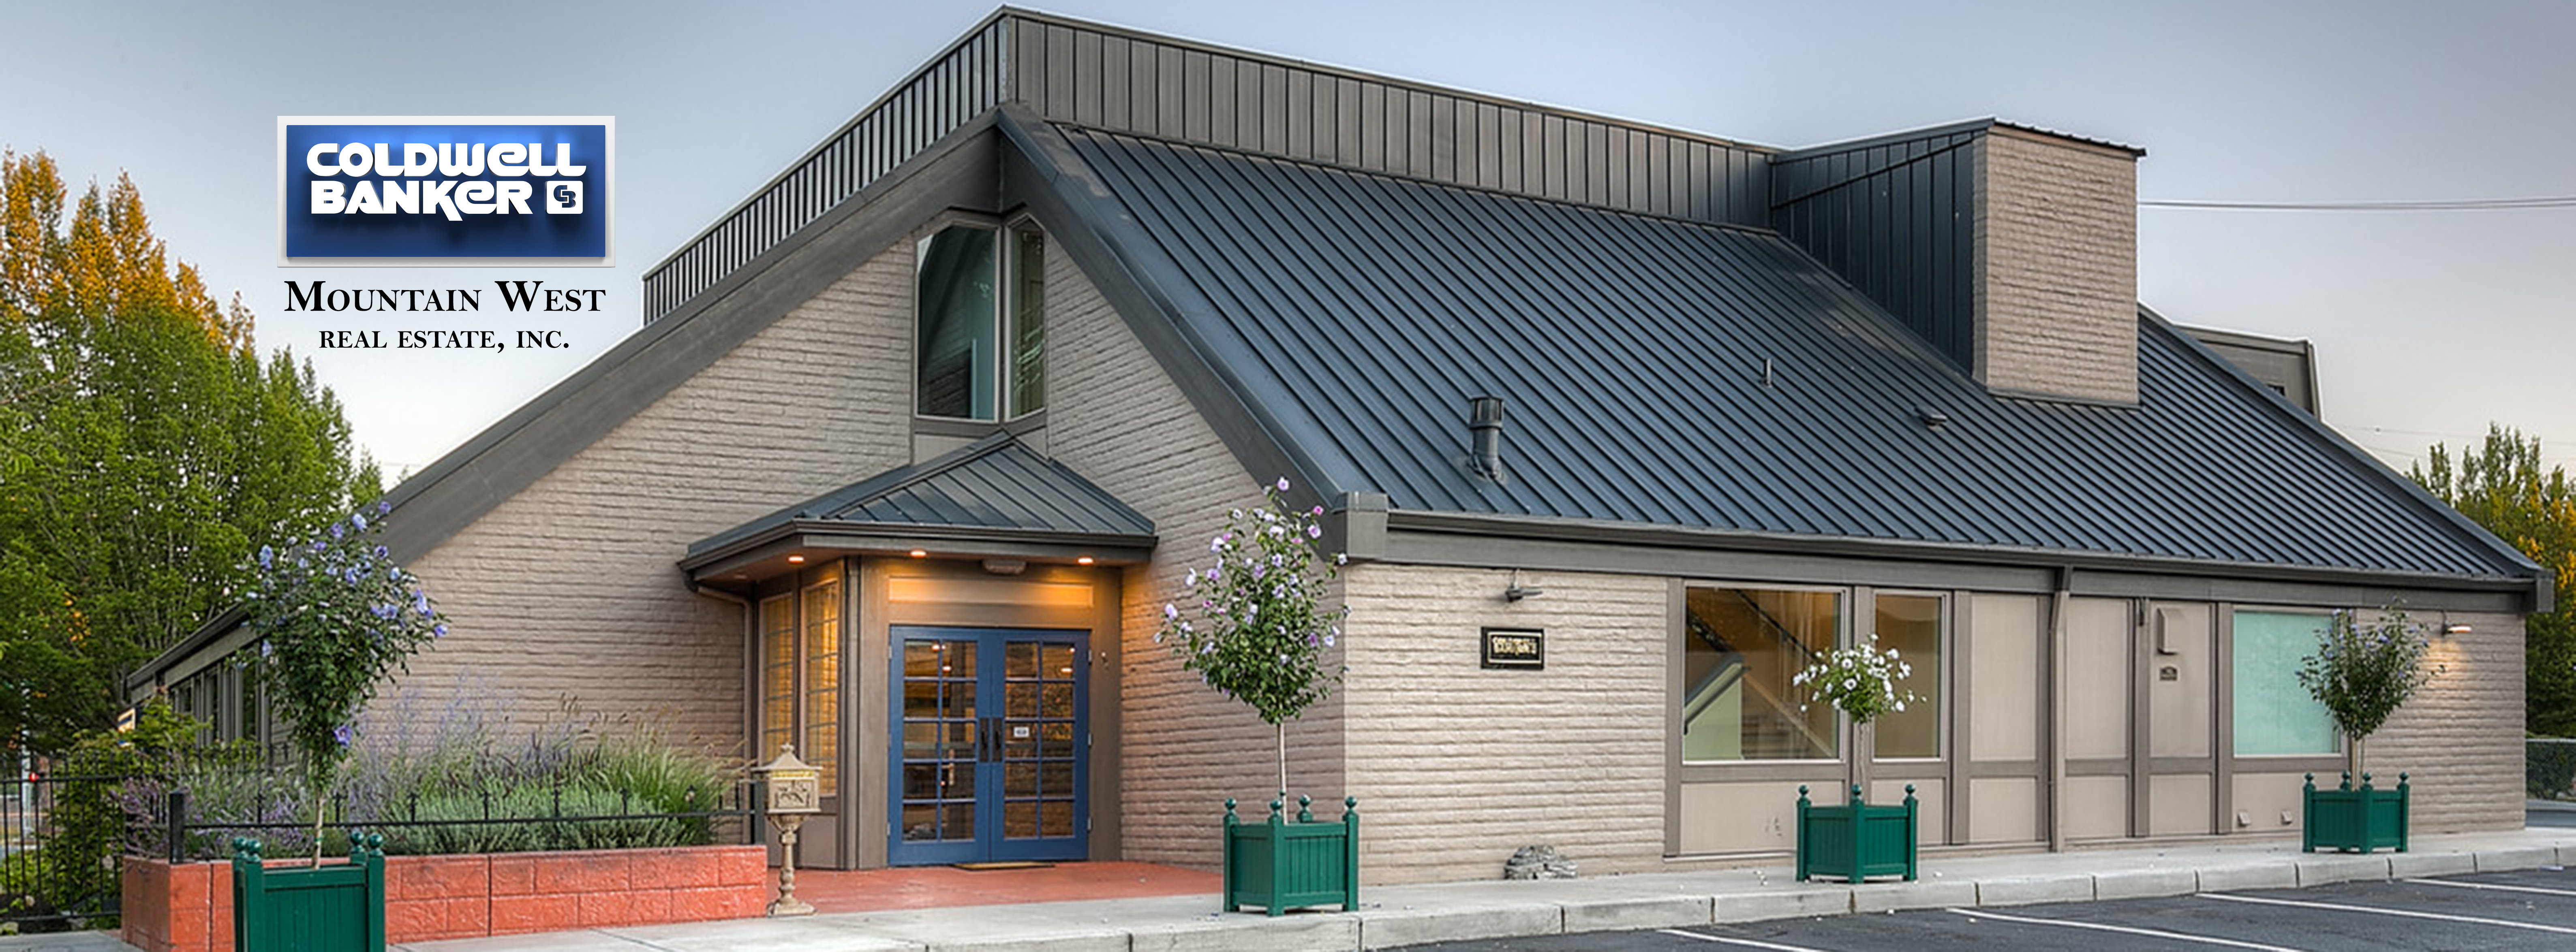 Coldwell Banker Mountain West Real Estate, Inc. reviews | Real Estate Agents at 235 Union St NE - Salem OR